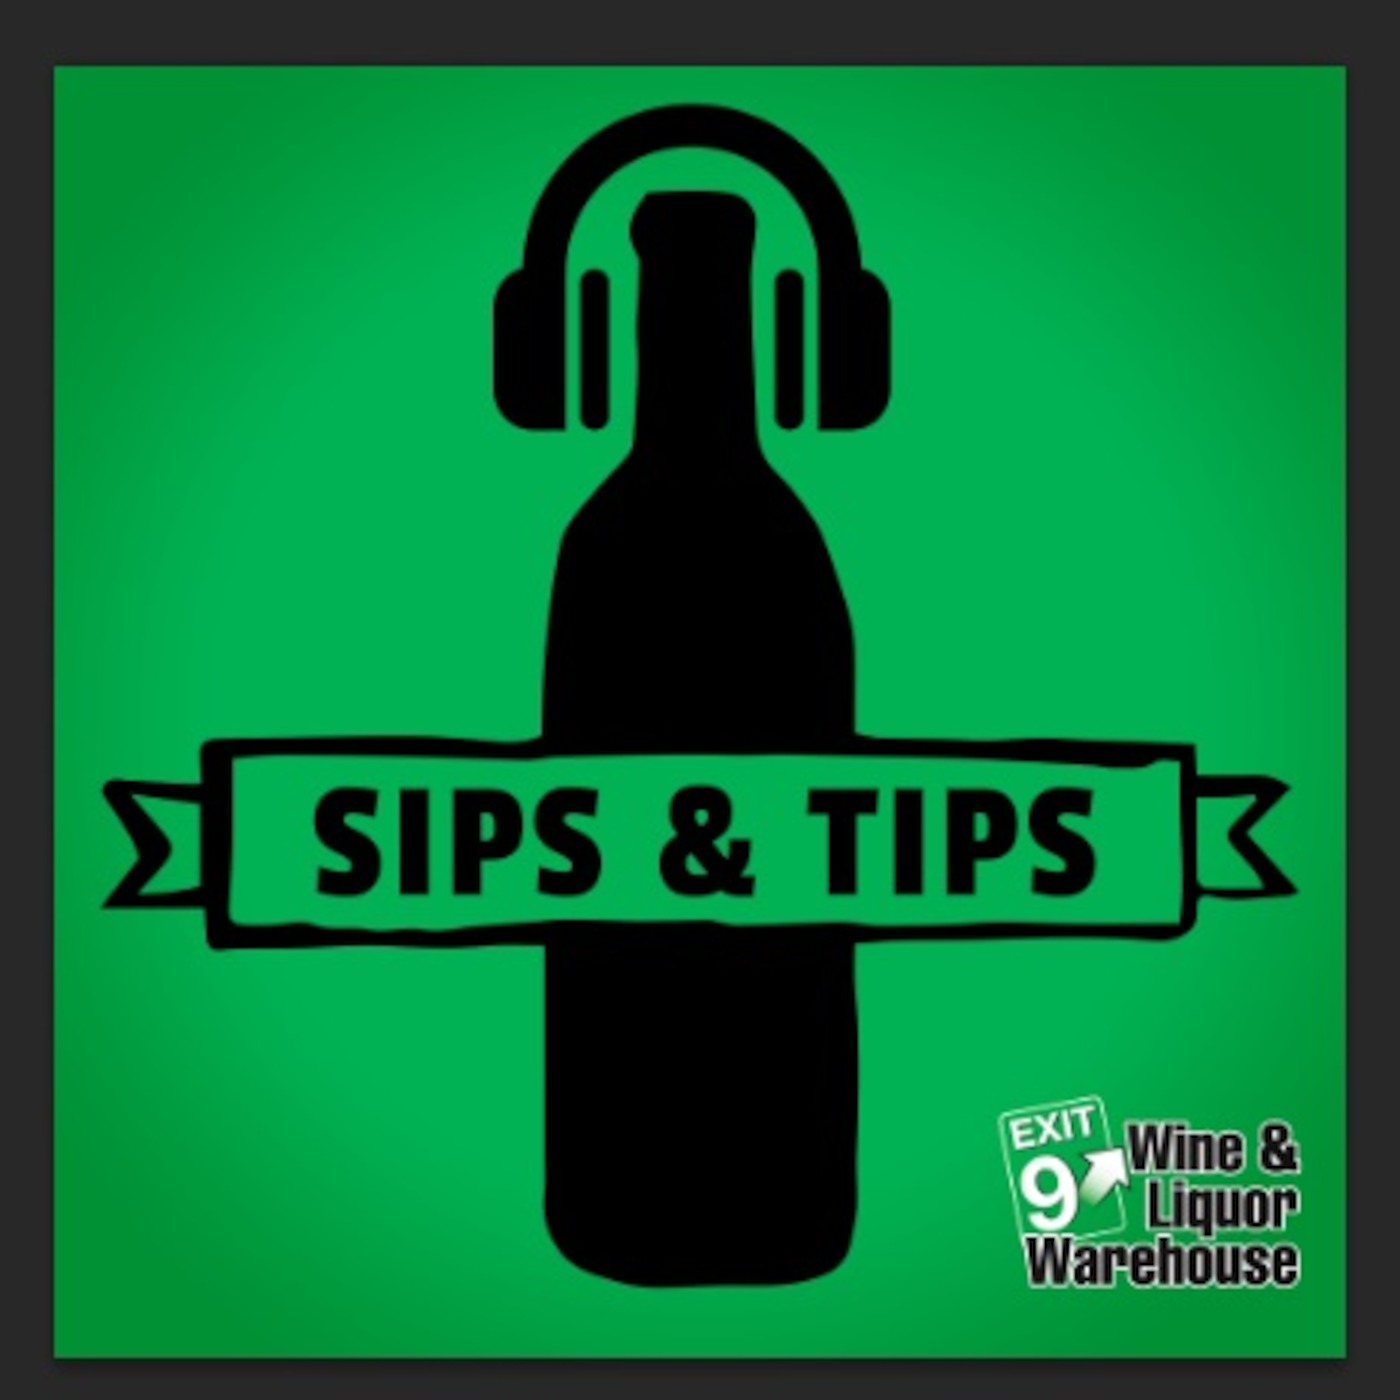 Sips & Tips from Exit 9 Wine & Liquor Warehouse